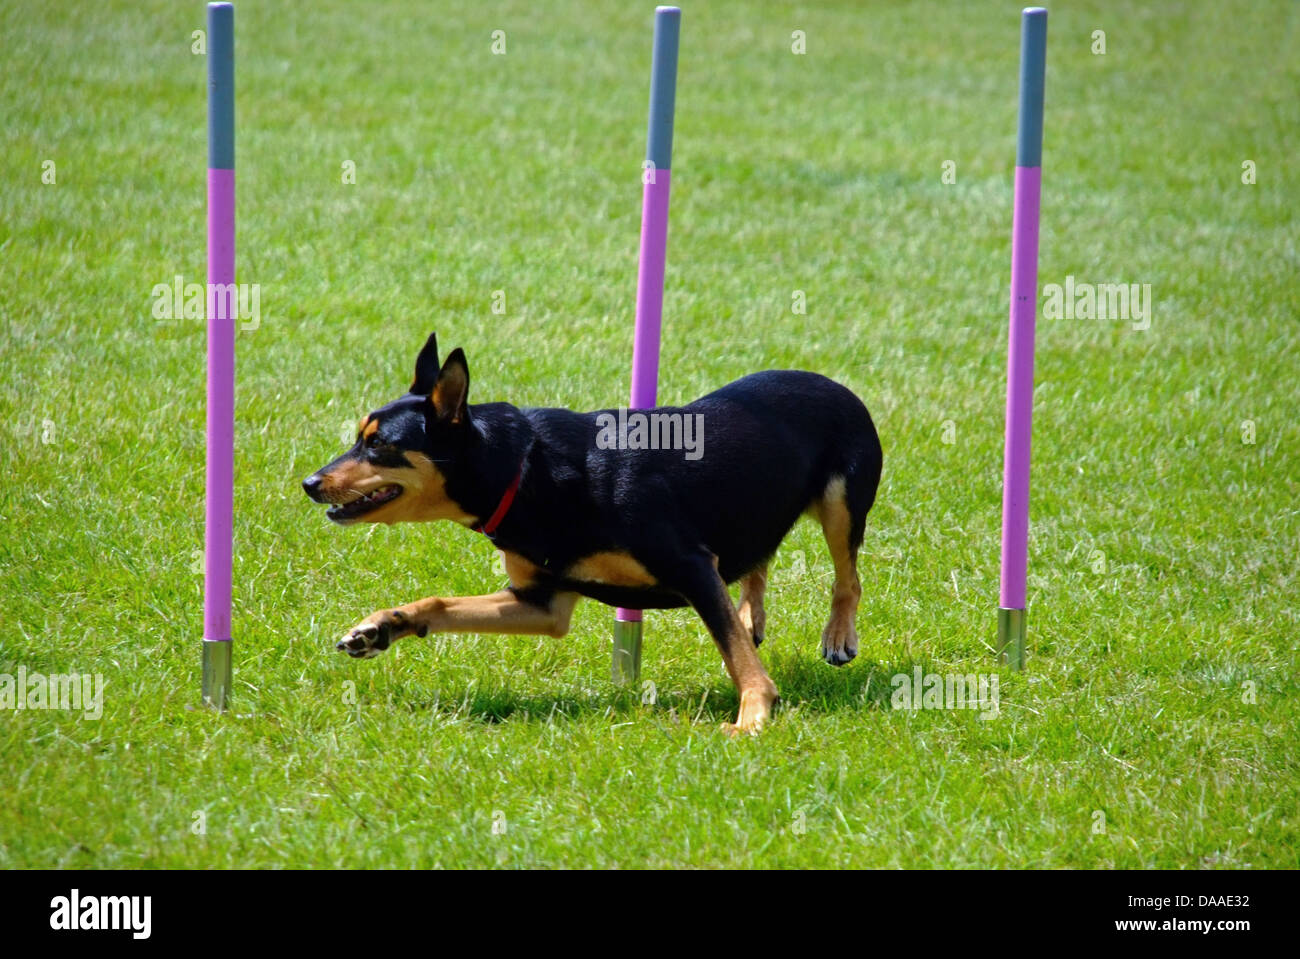 Kelpie Dog Going Through Weave Poles at Agility Dog Show - Stock Image